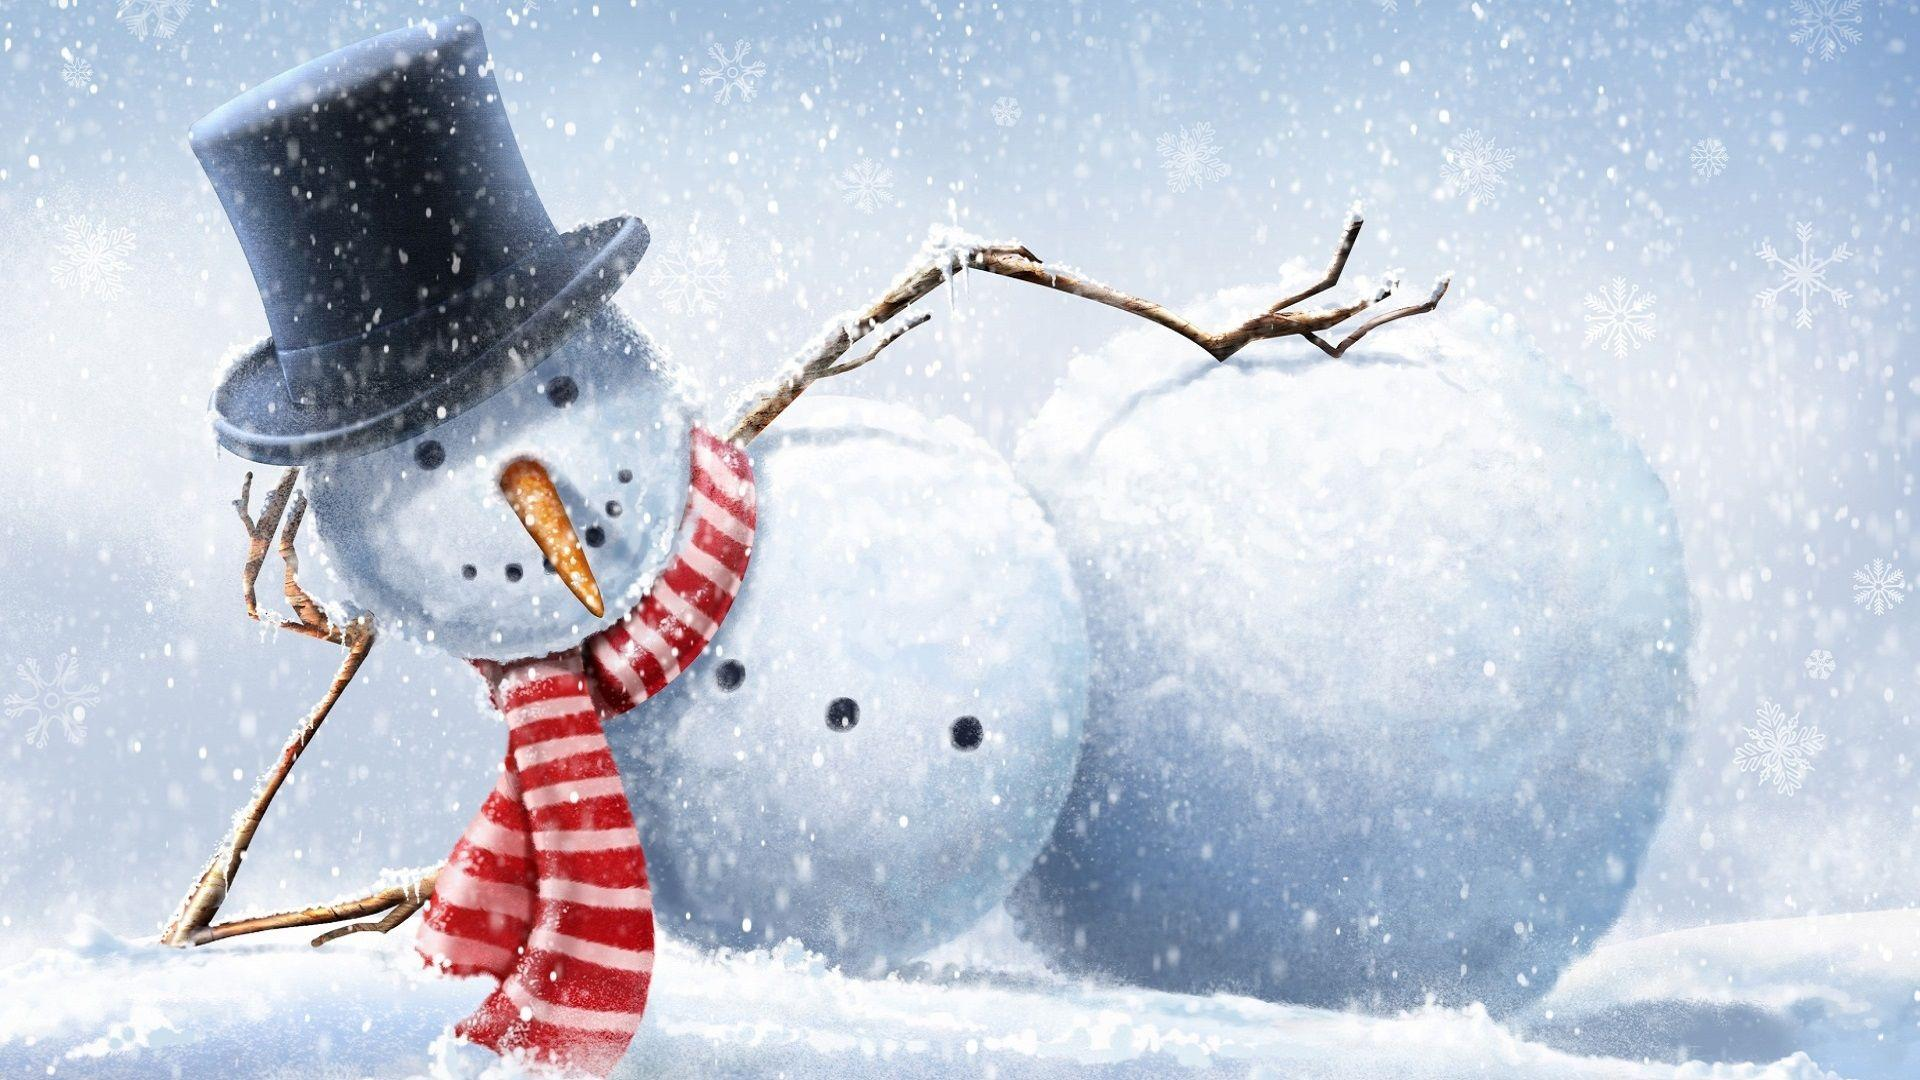 Image For > Free Snowman Desktop Wallpapers